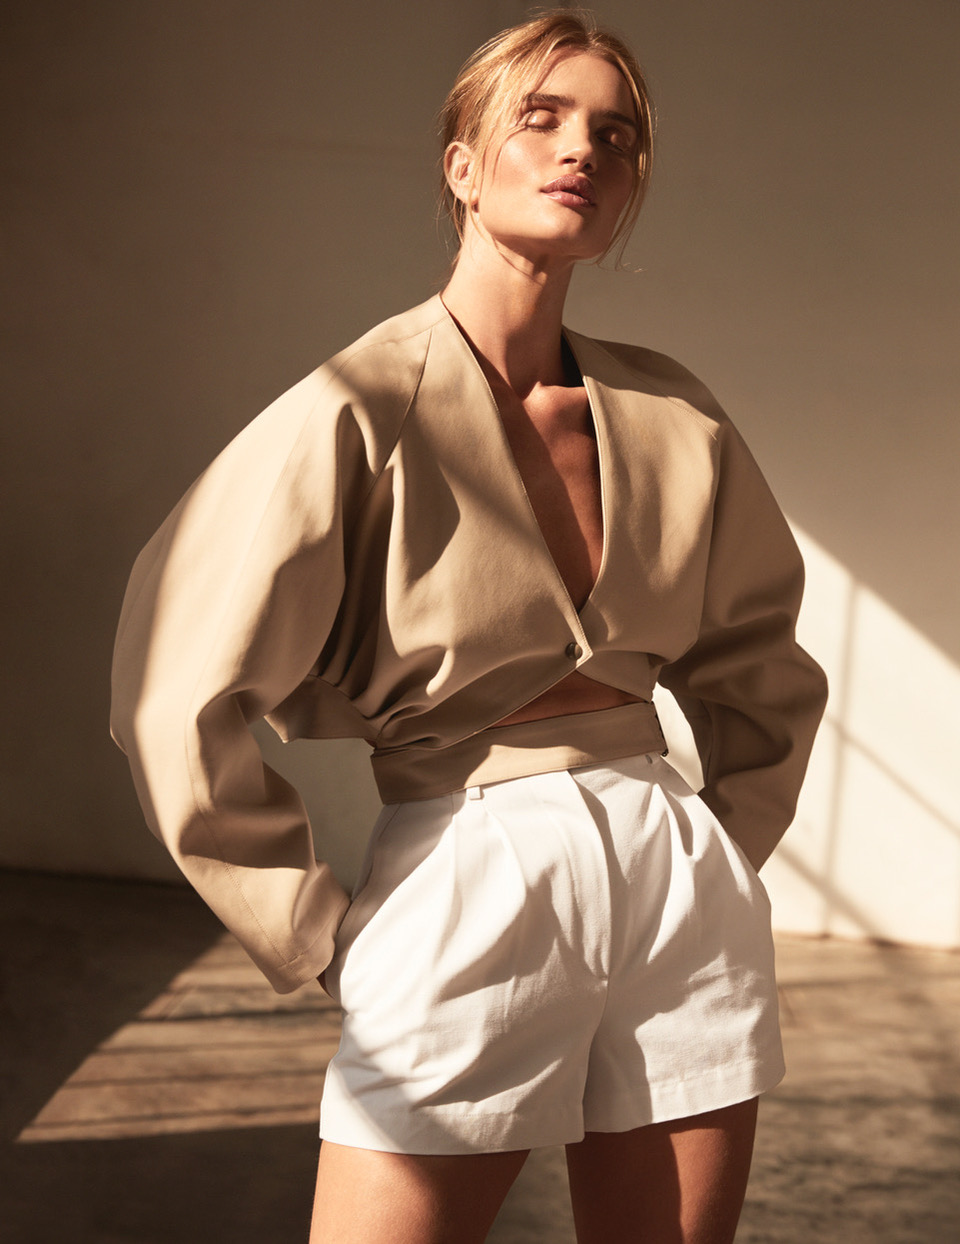 ROSIE_HUNTINGTON_WHITLEY_SHOT_07_043_2514DR_B_ADOBERGB